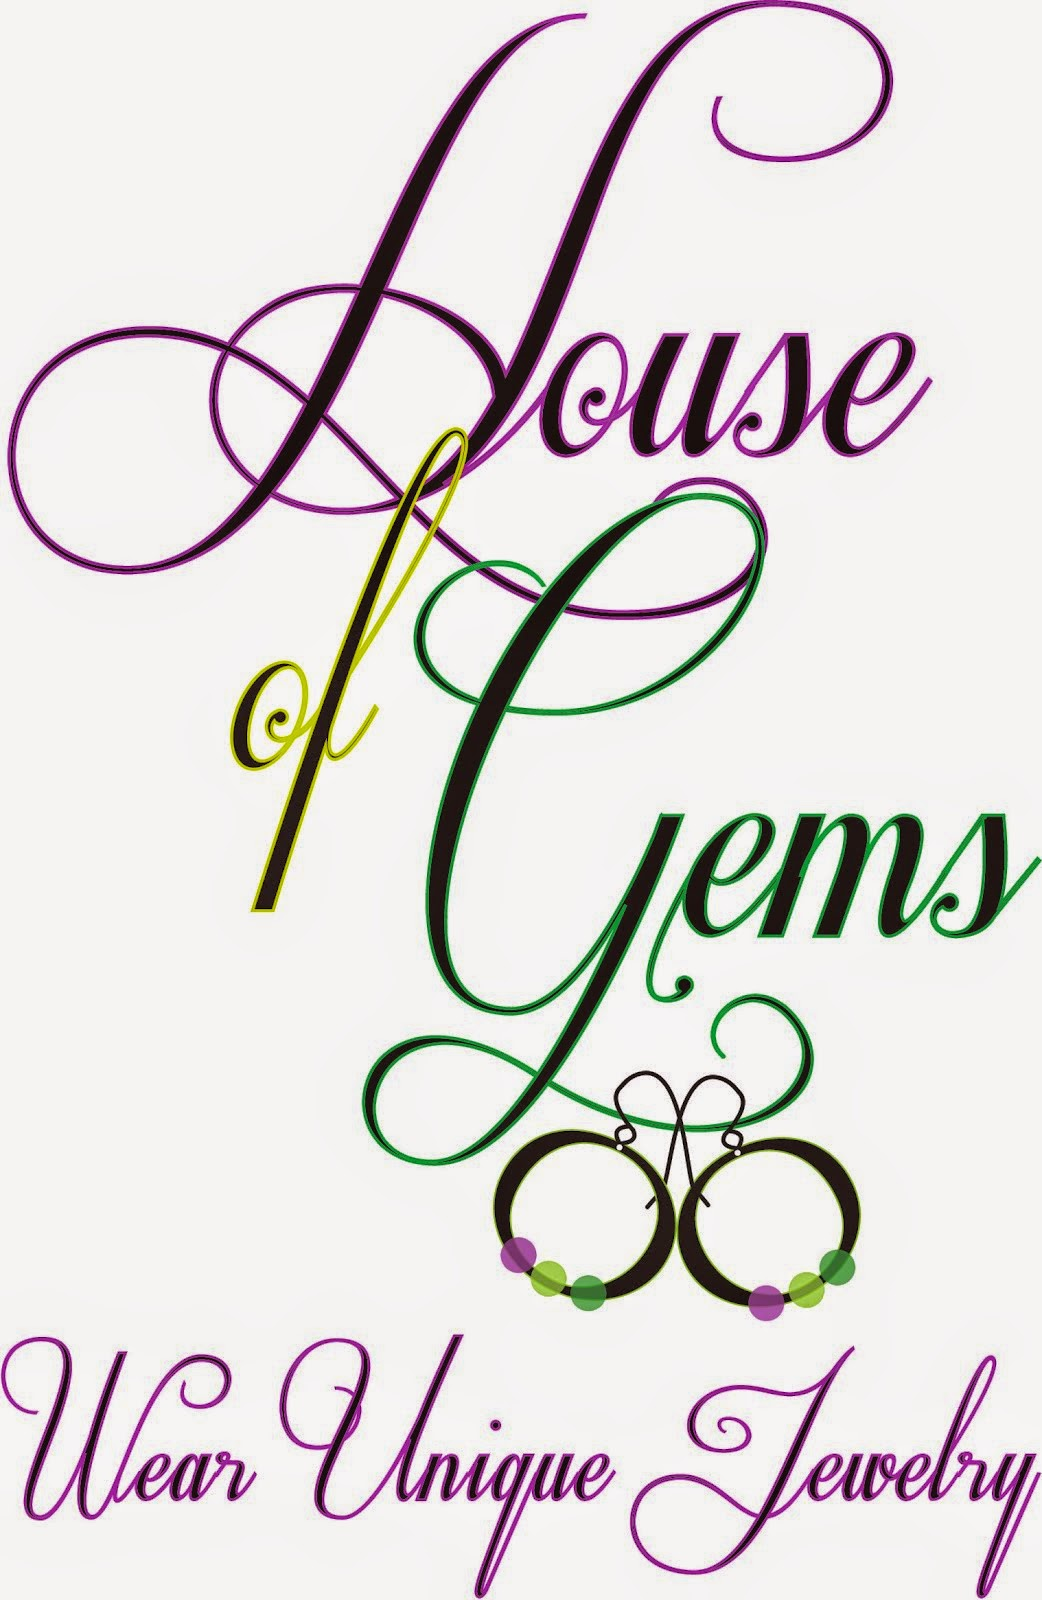 House of Gems Official Website